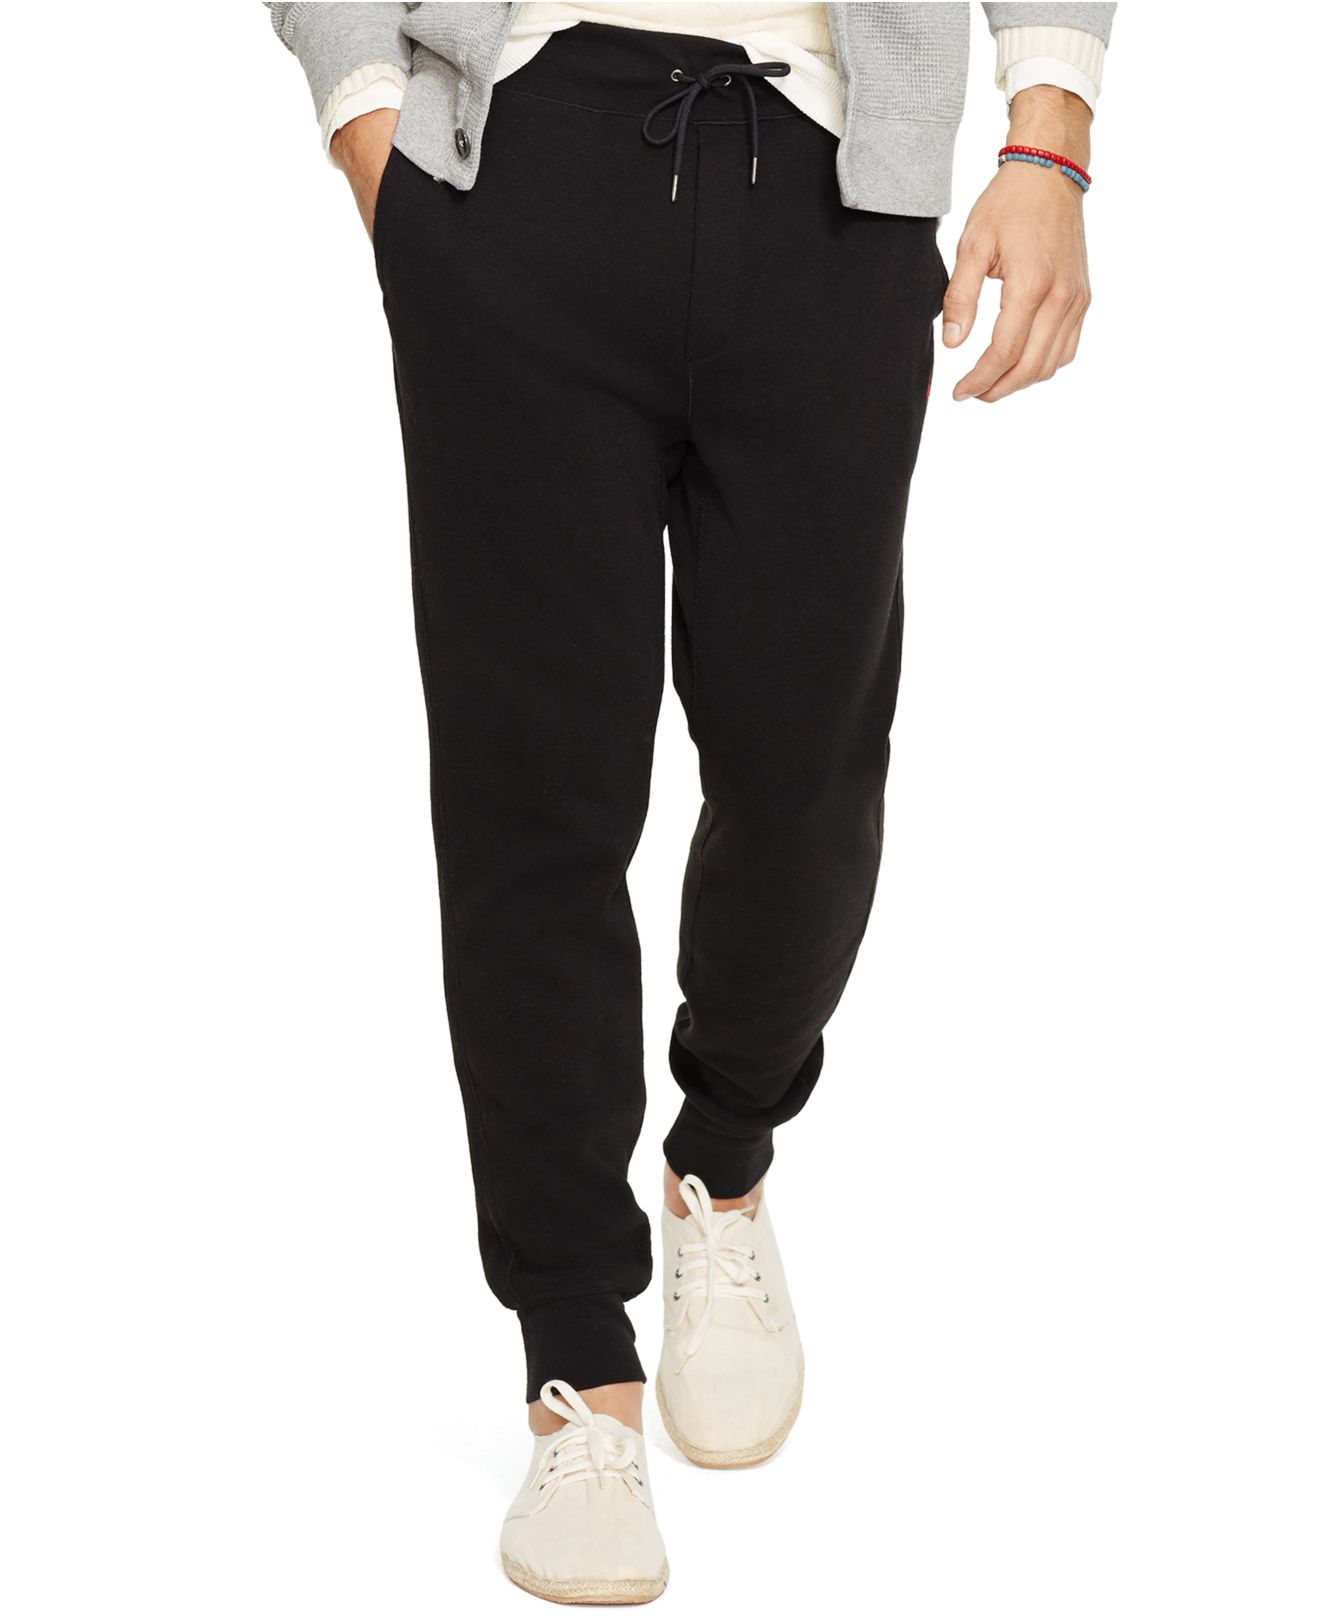 Clearance 100% Guaranteed drawstring sweatpants - Black Polo Ralph Lauren Outlet For Nice Cheap Sale Amazon NFcxdTrIA